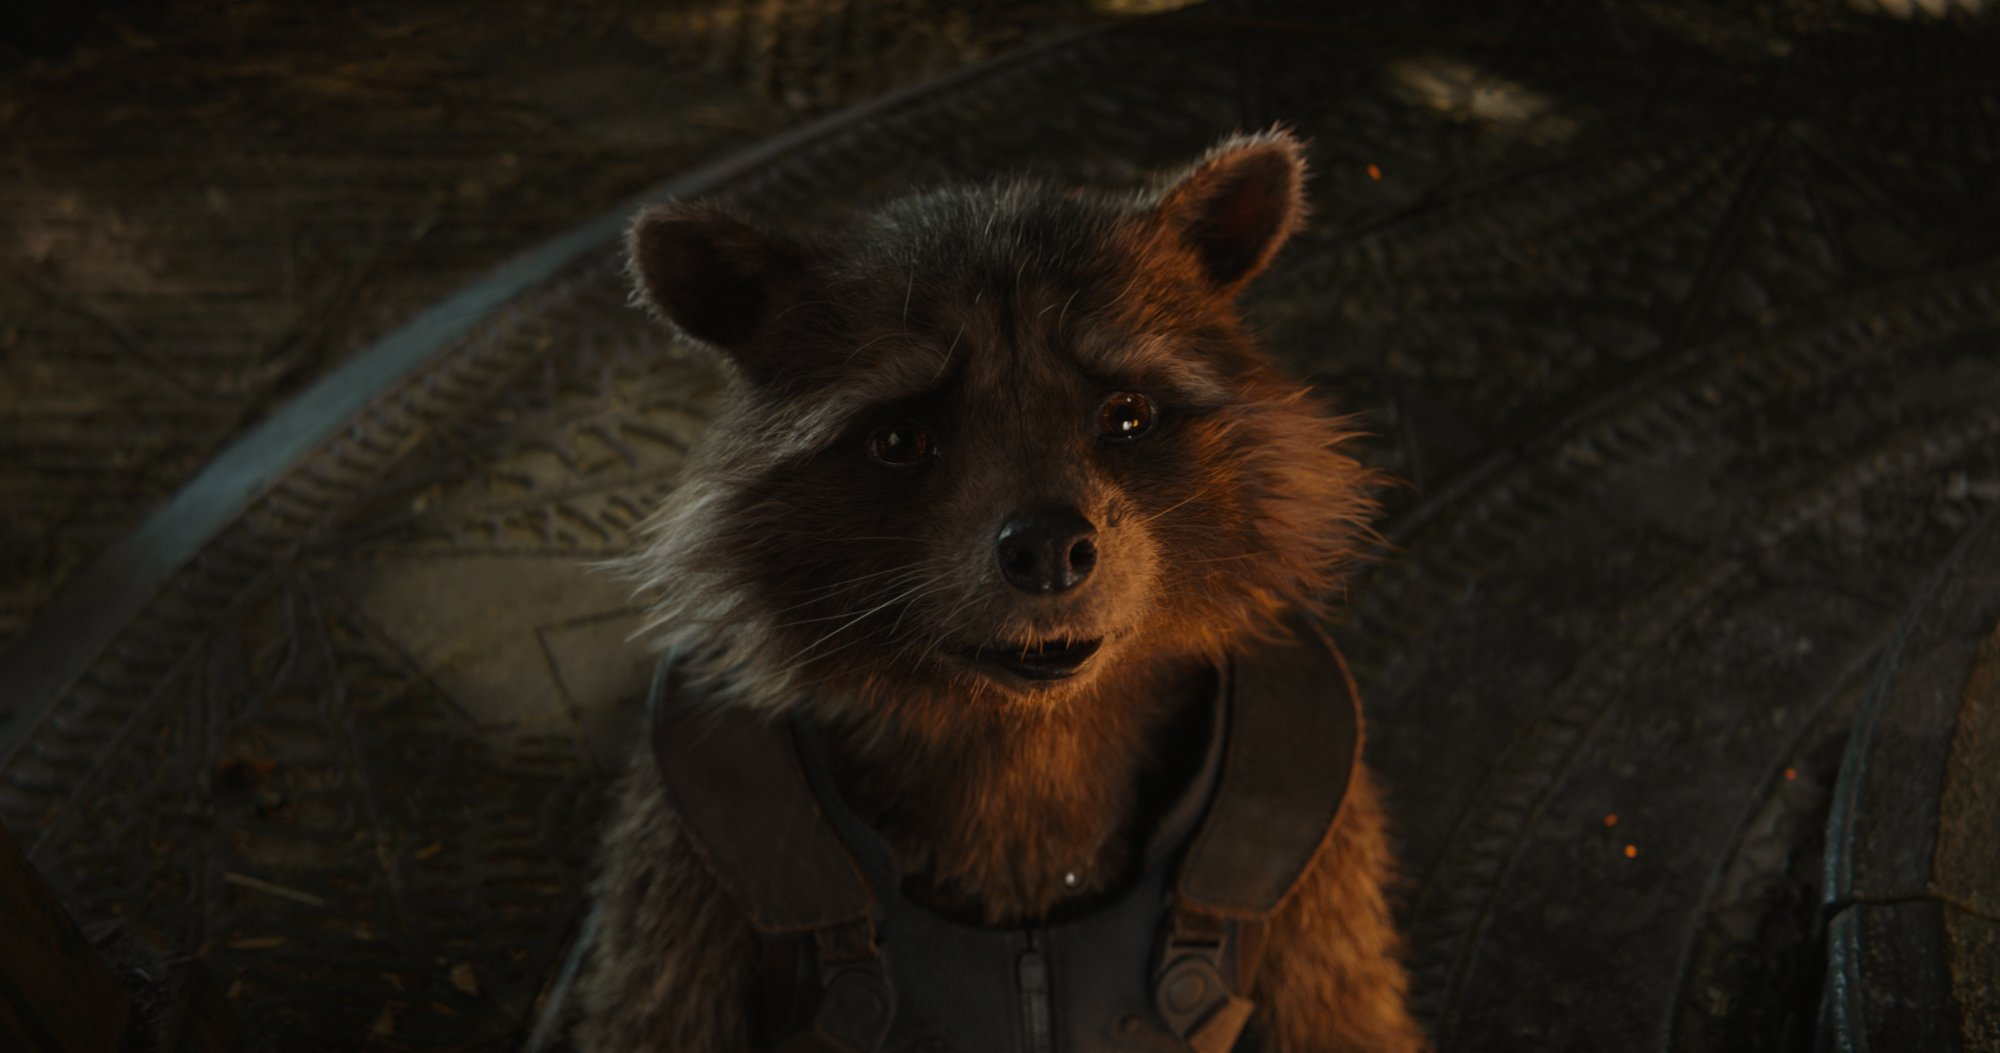 Photo du film Avengers: Endgame avec Rocket Raccoon en 2013